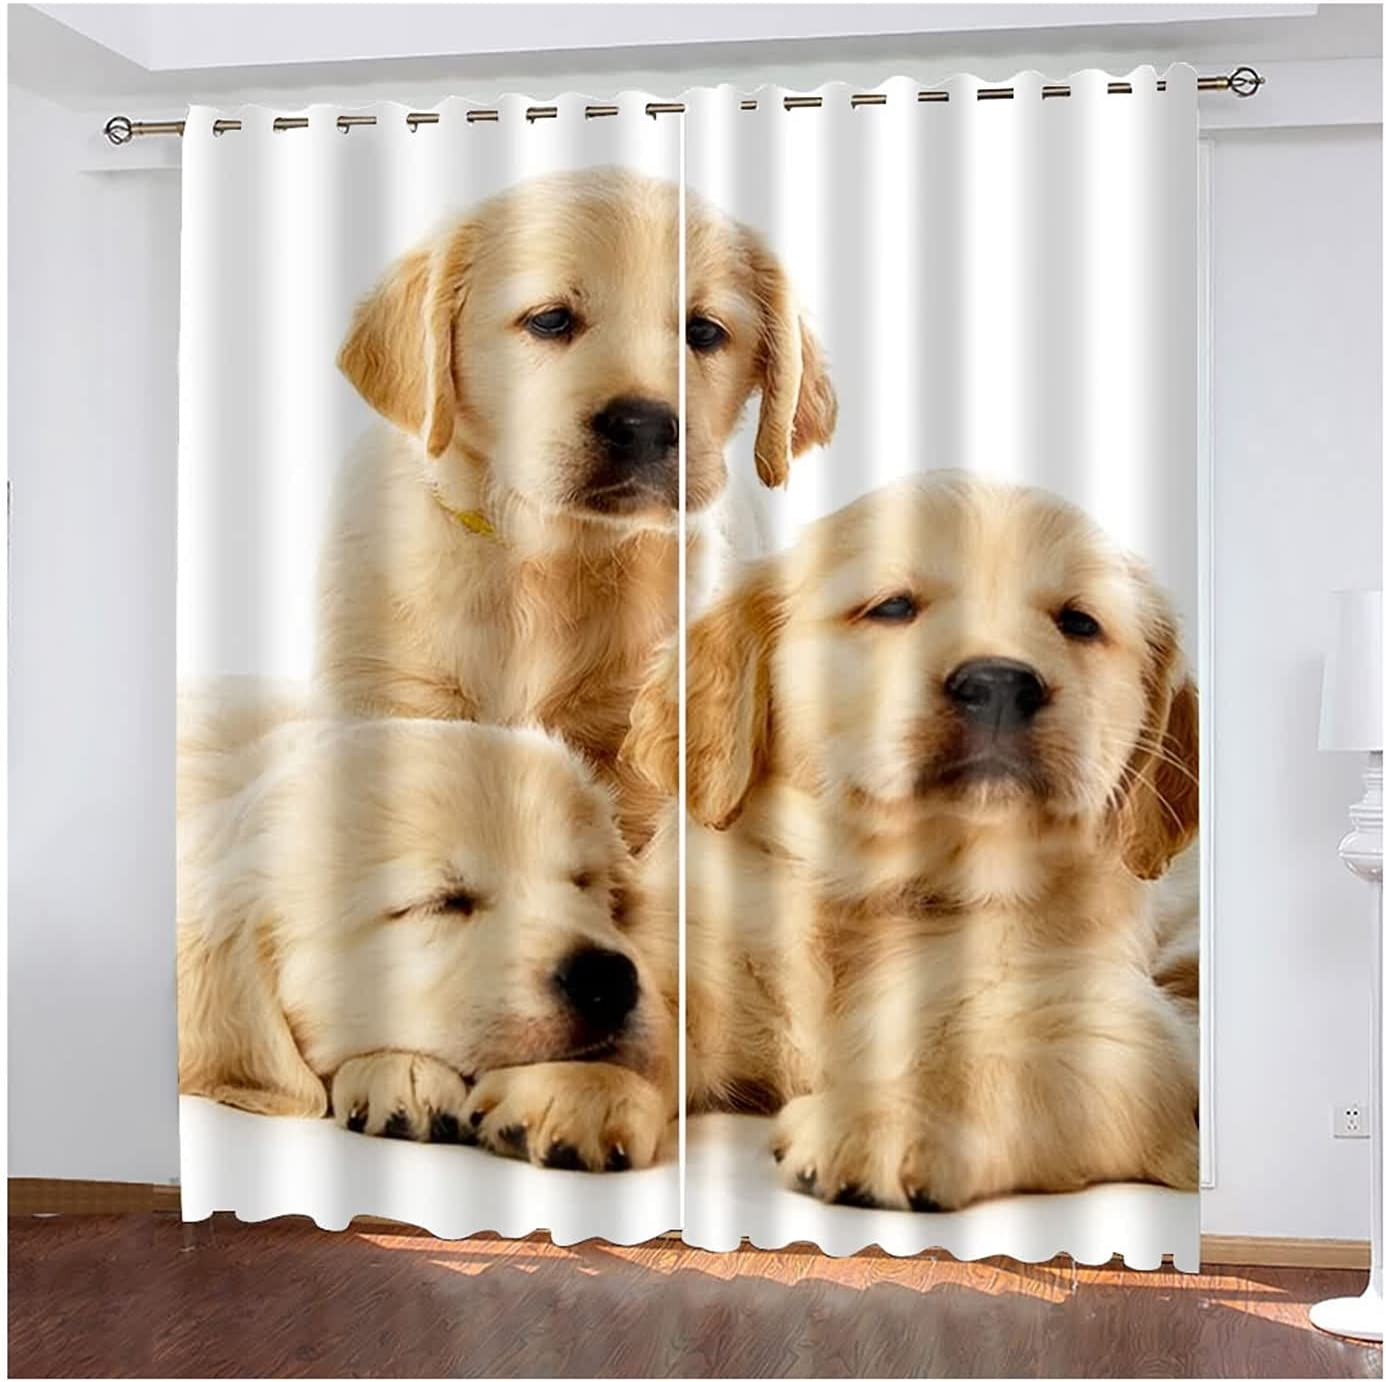 Daesar Blackout Curtains Fort Worth Mall 2 Panel Sets Room M for SALENEW very popular! Curtain Living